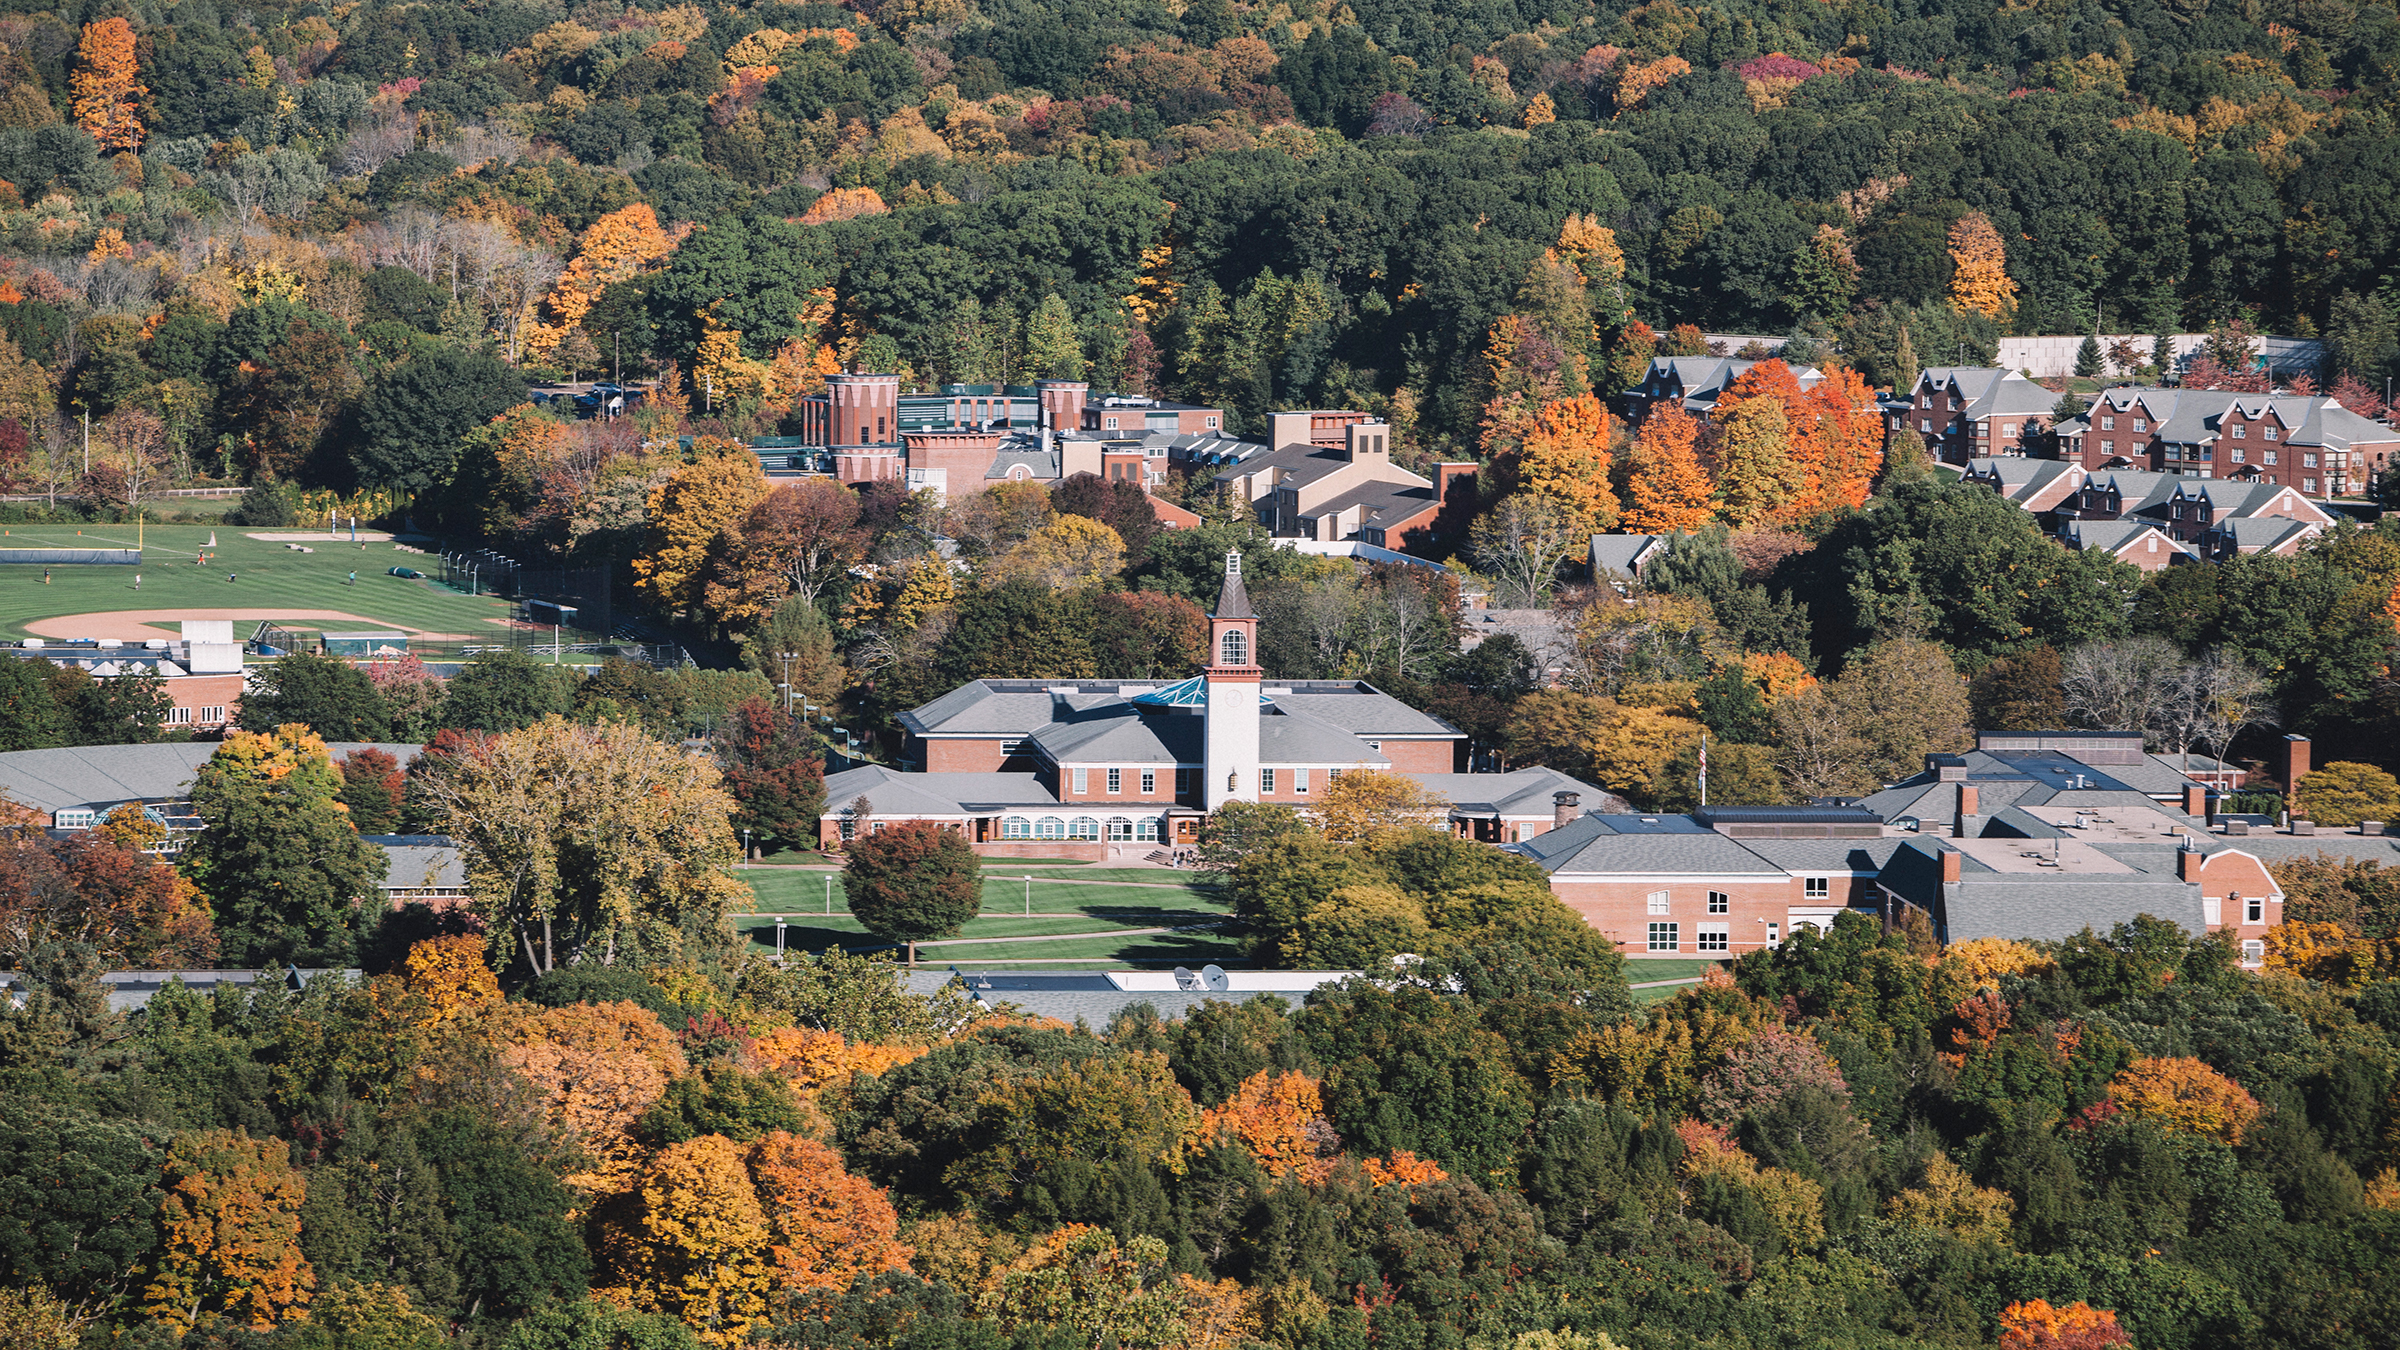 Aerial view of the Mount Carmel Campus in autumn